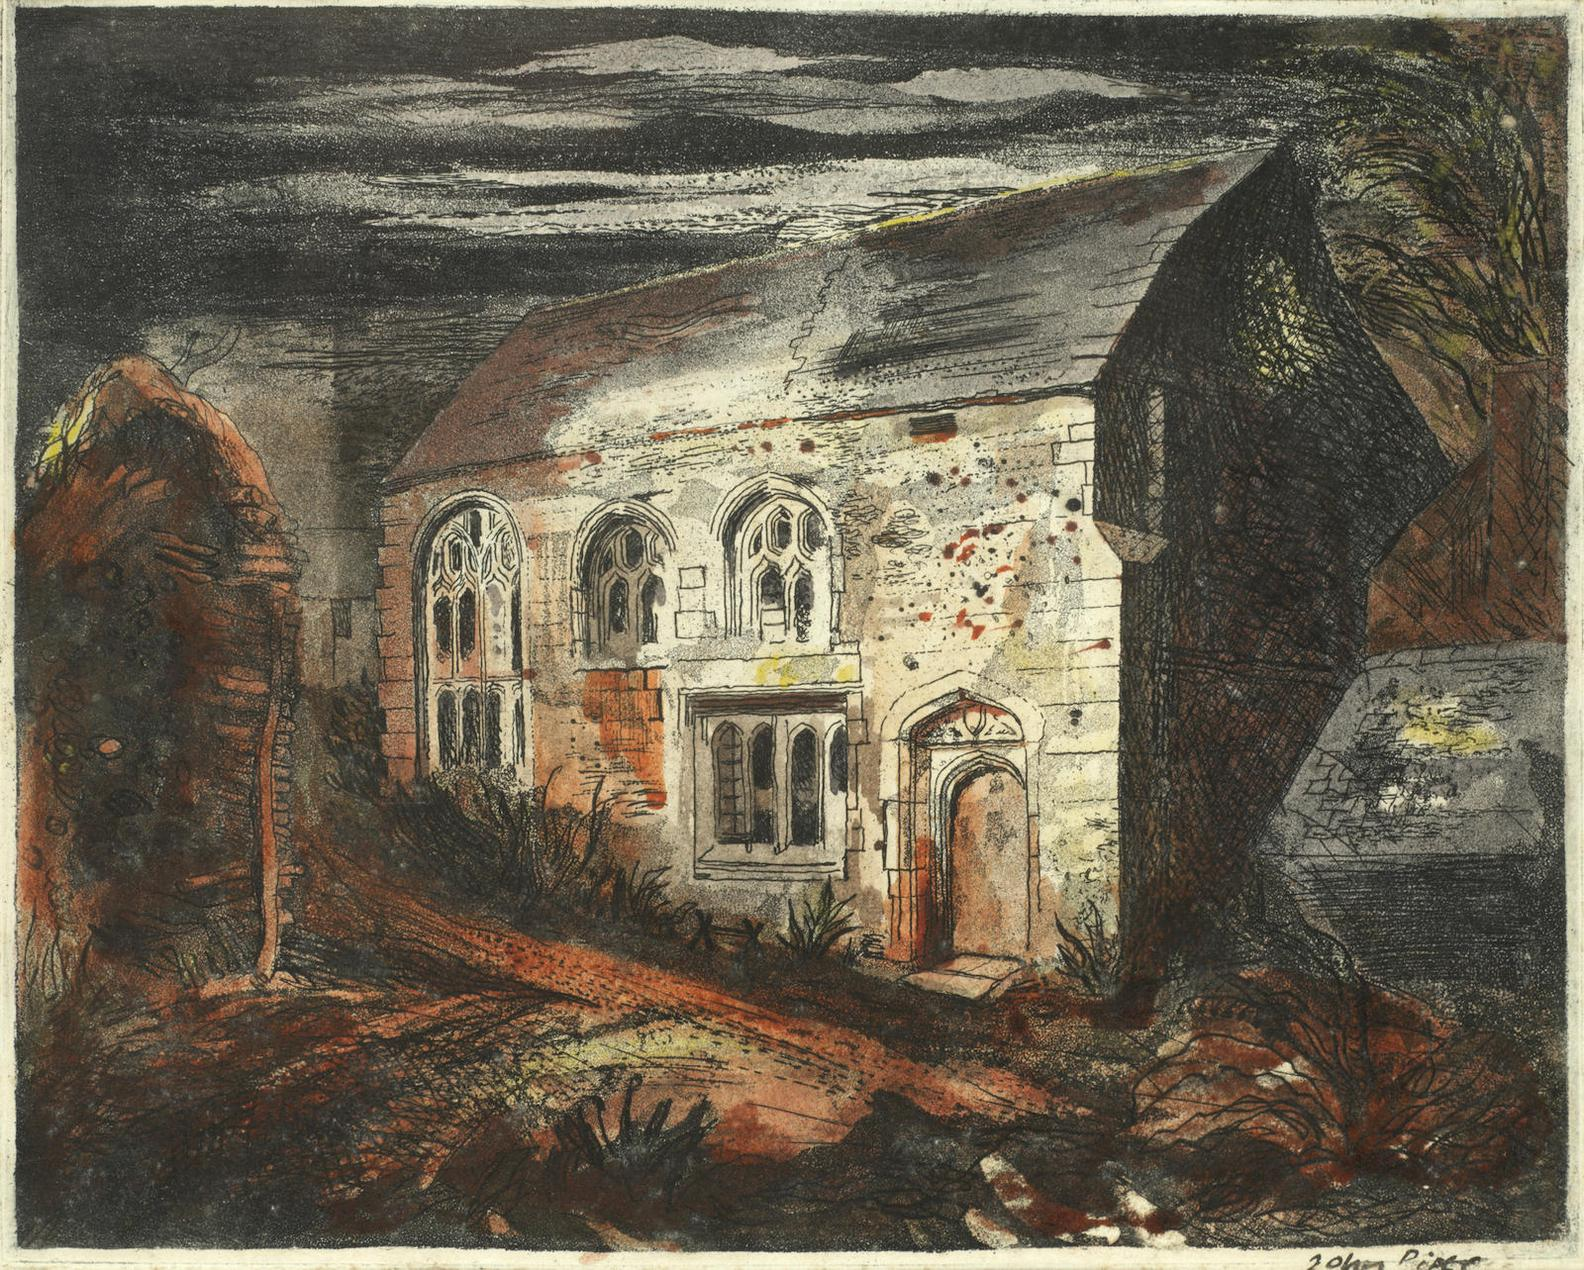 John Piper-The Hall, Trecarrel, Cornwall (Levinson 30)-1943